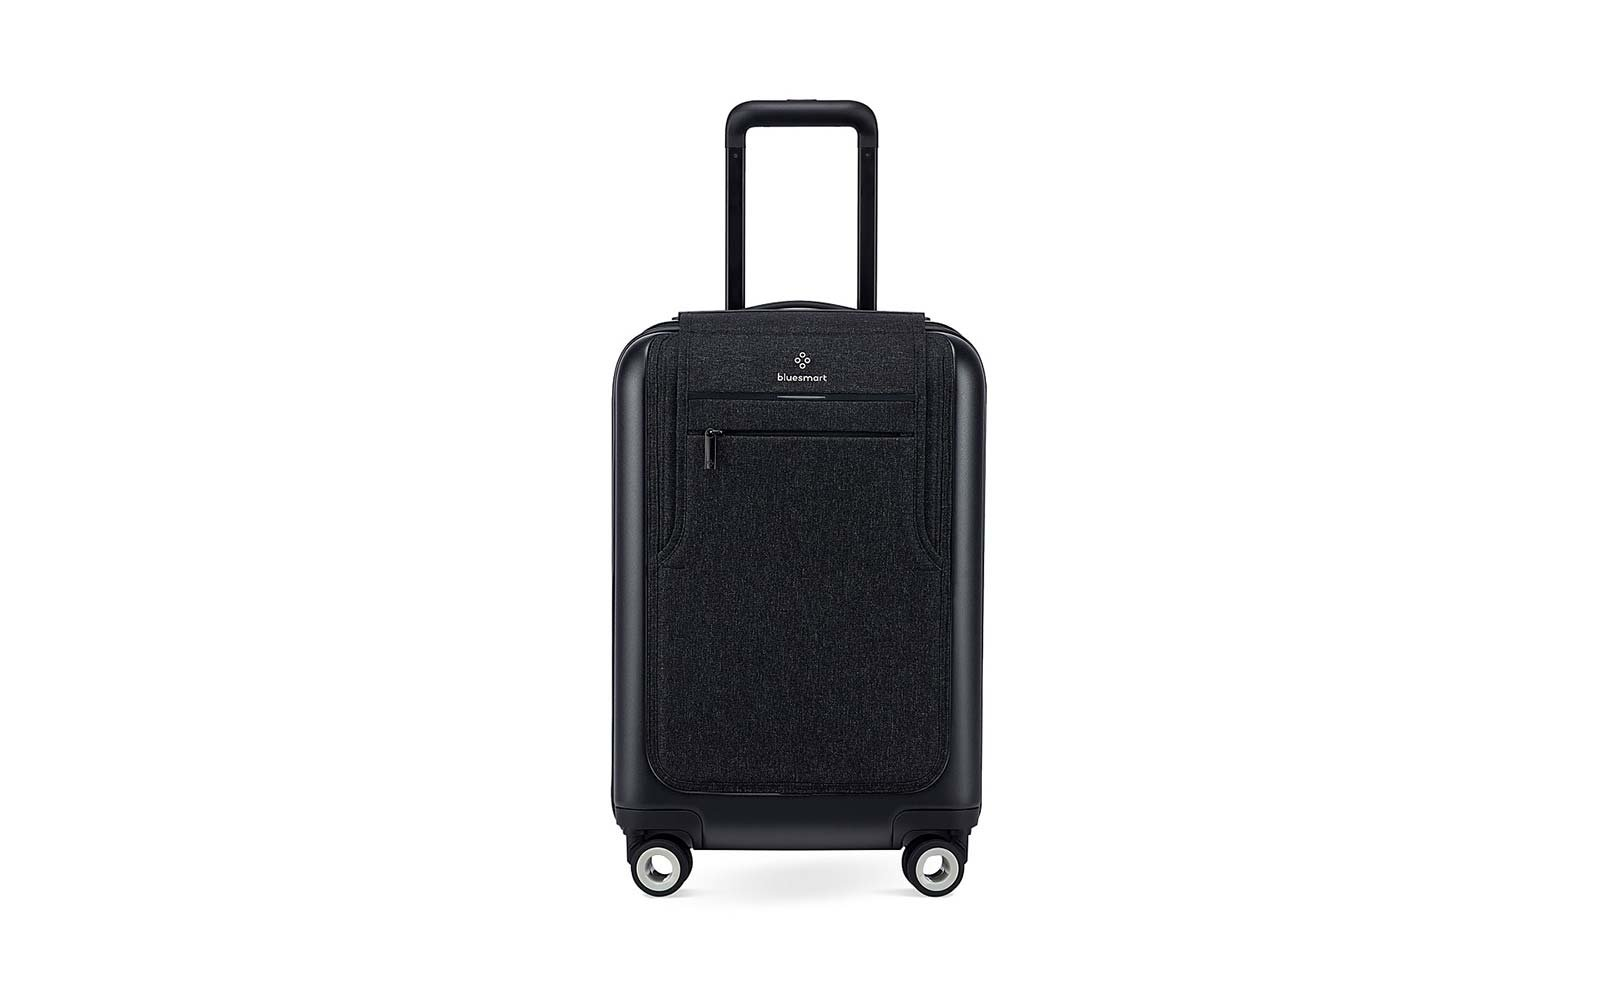 bluesmart travel luggage